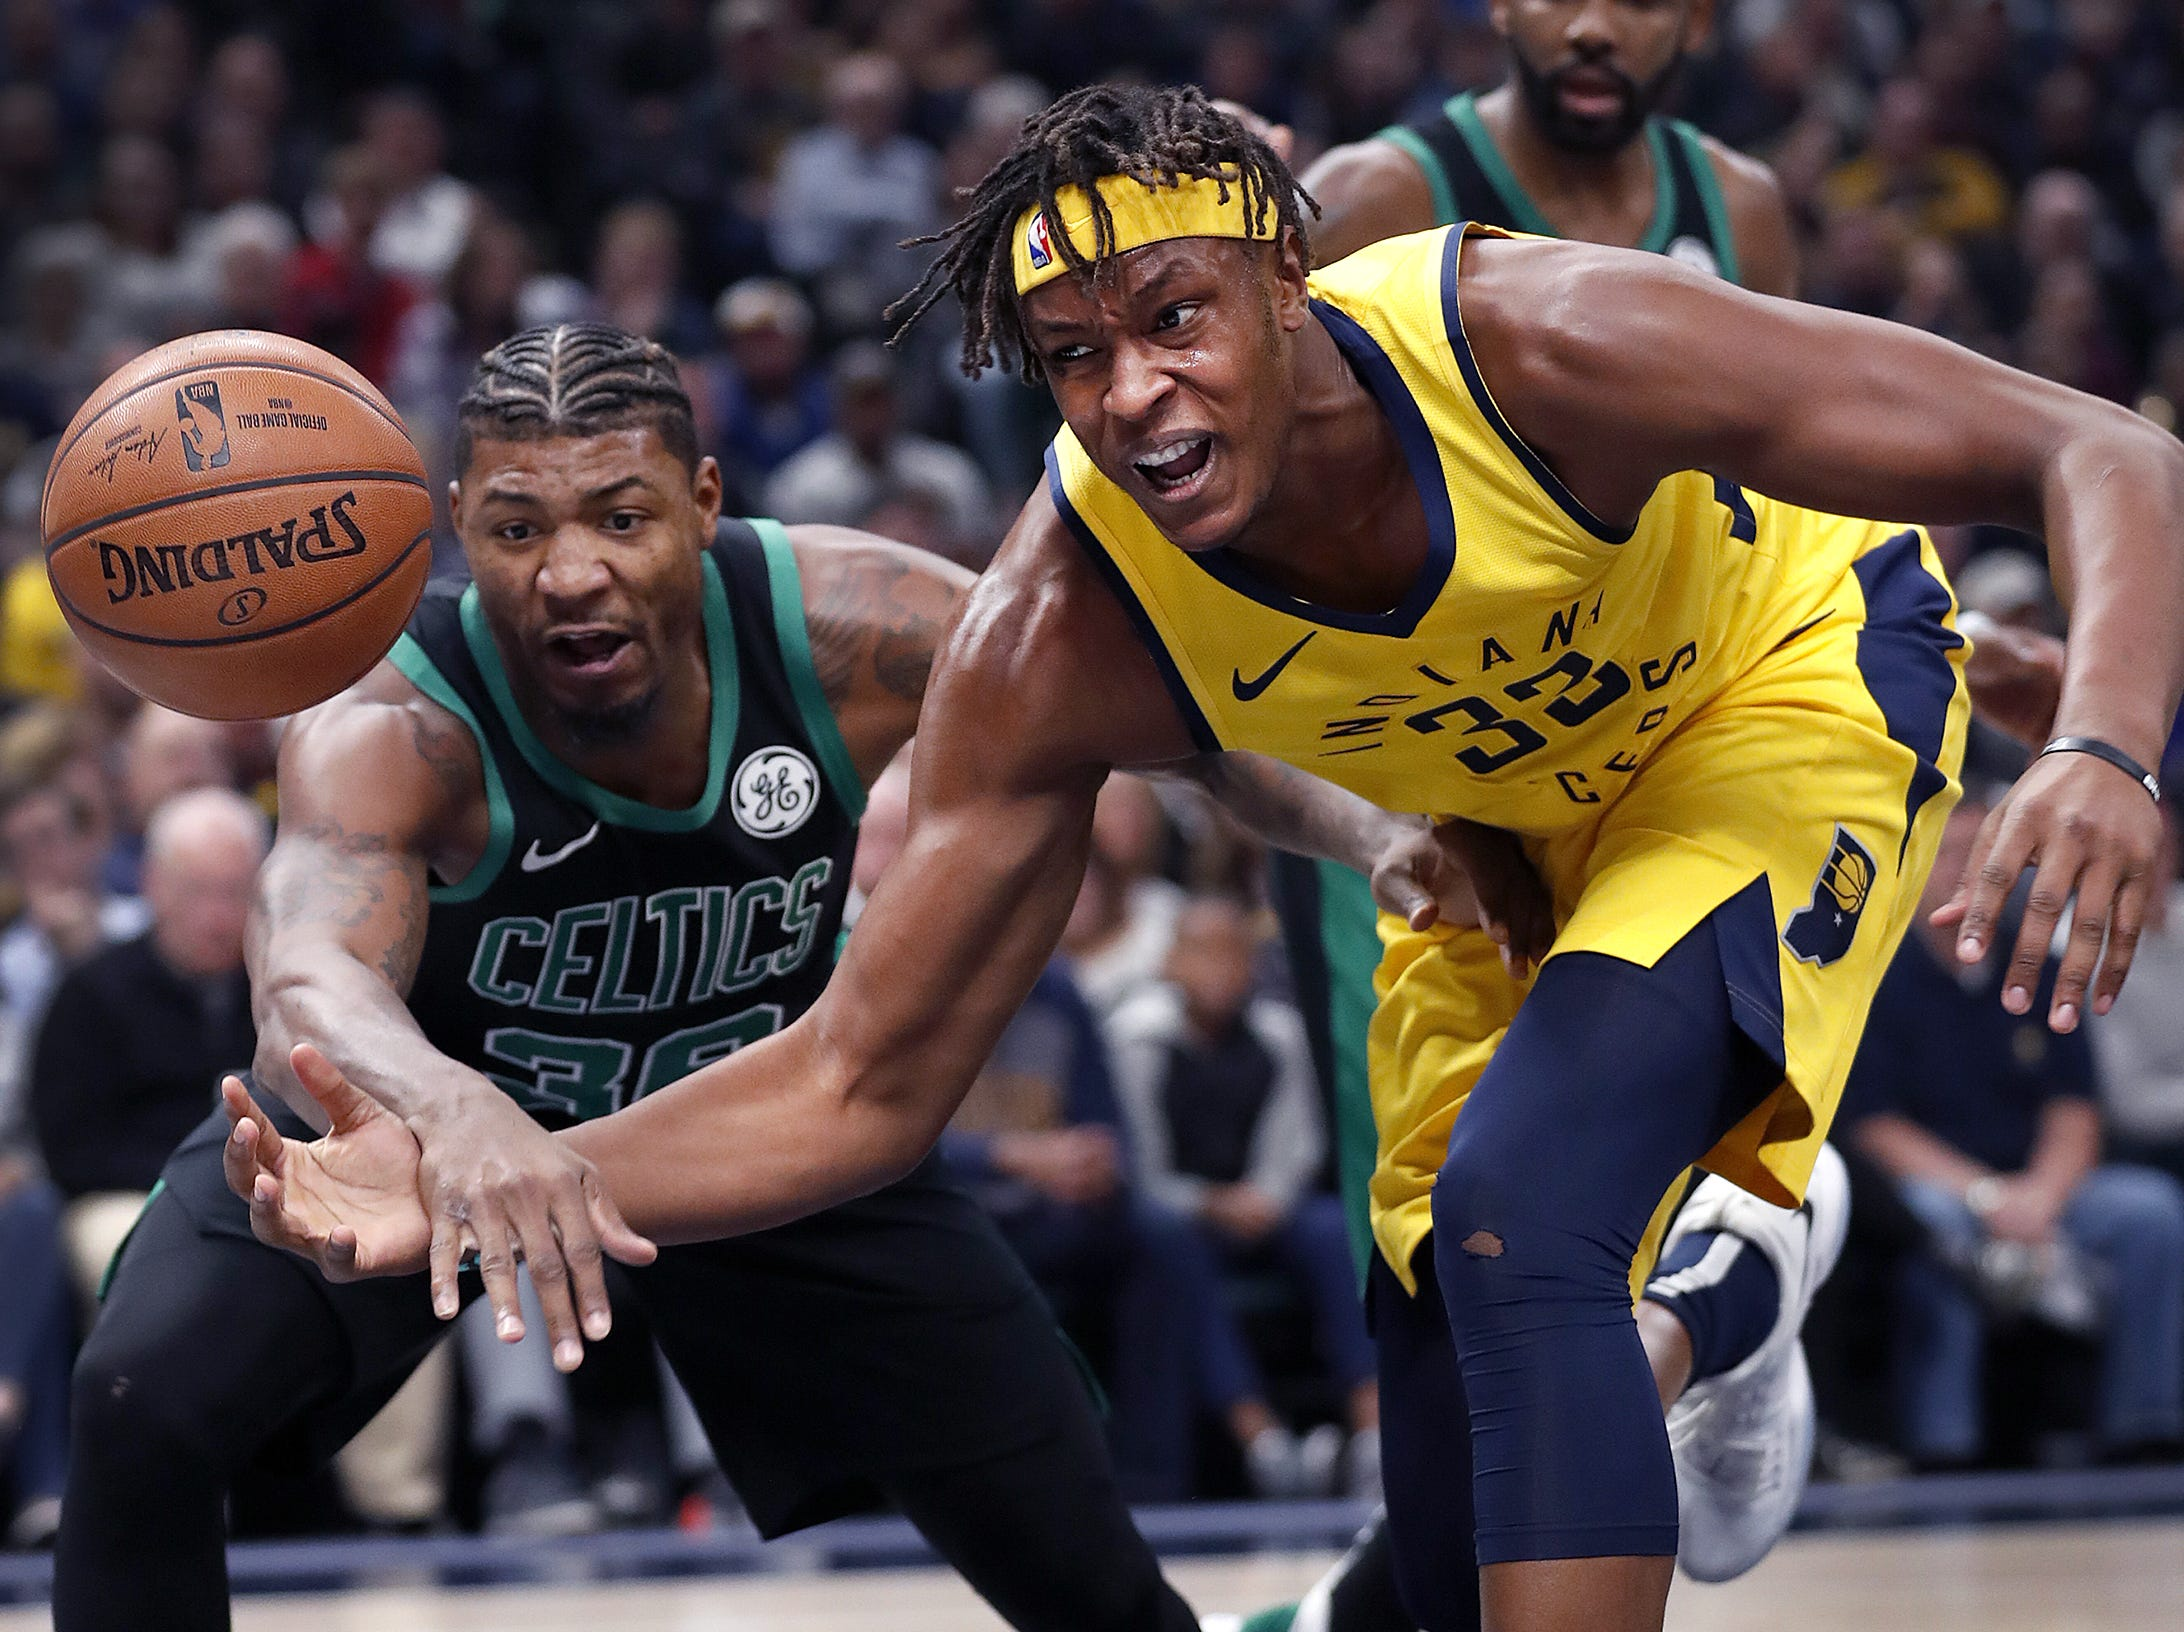 Indiana Pacers center Myles Turner (33) is fouled by Boston Celtics guard Marcus Smart (36) in the first half of their game at Bankers Life Fieldhouse on Nov 3, 2018.